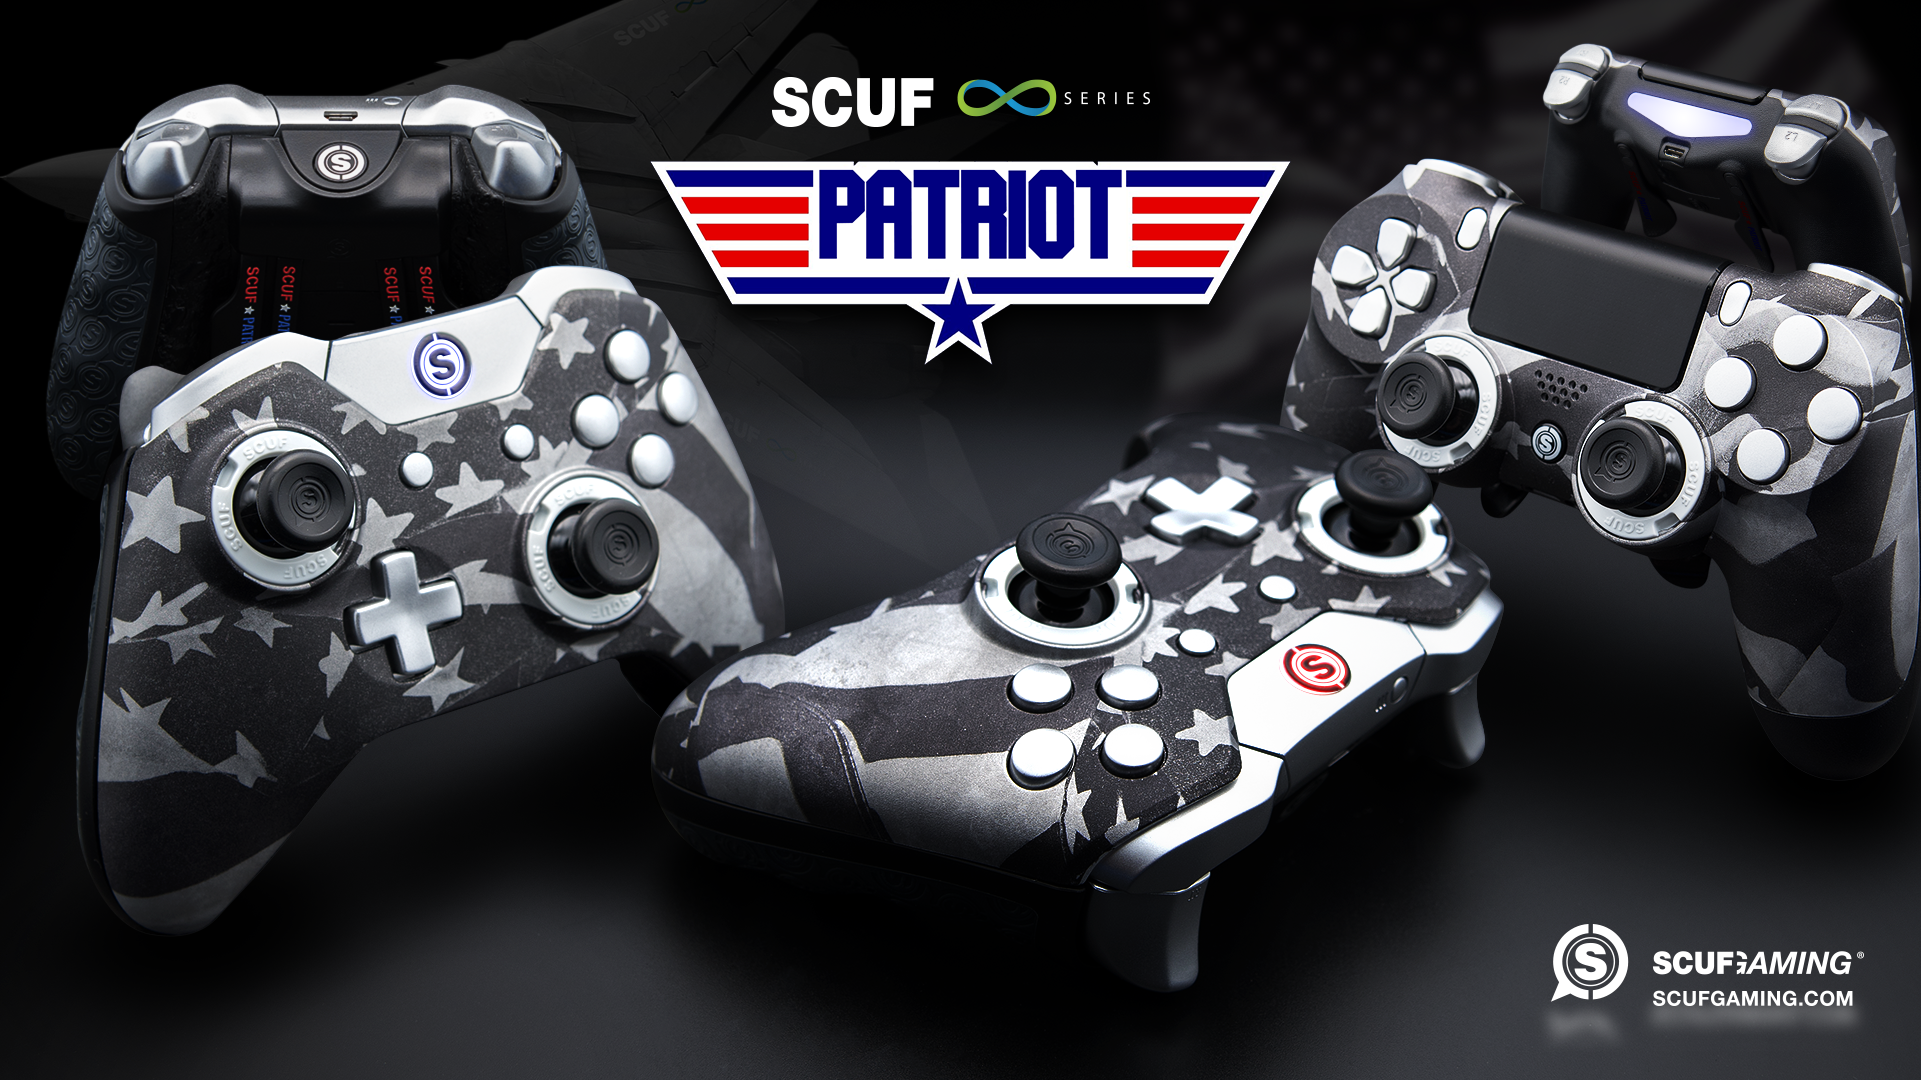 Playstation Ps4 Custom Controllers Scuf Gaming Ps4 Game Controller Control